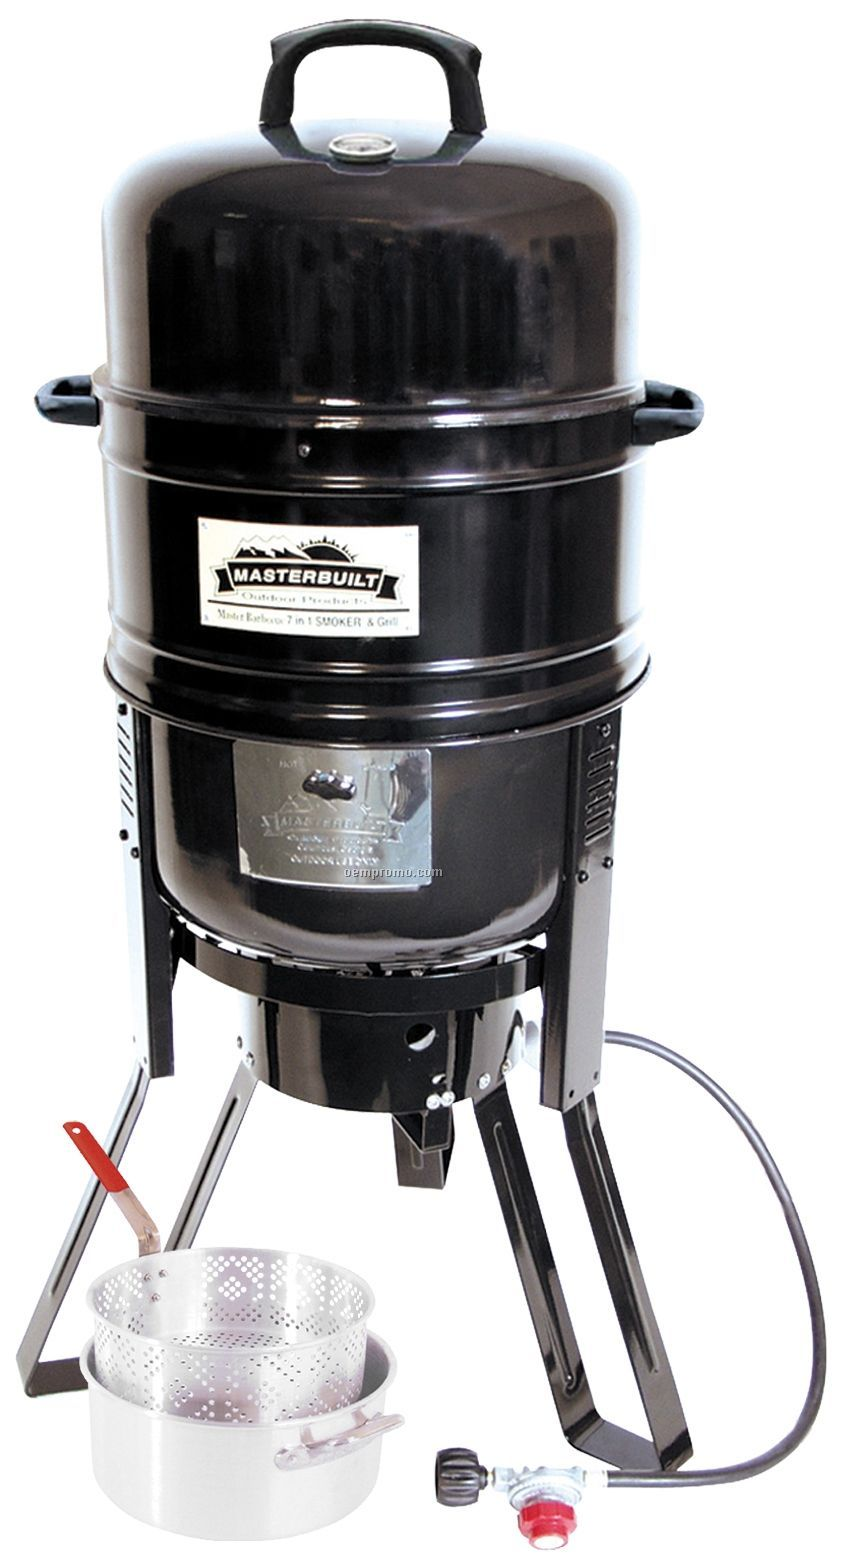 Masterbuilt 7-in-1 Smoker And Grill